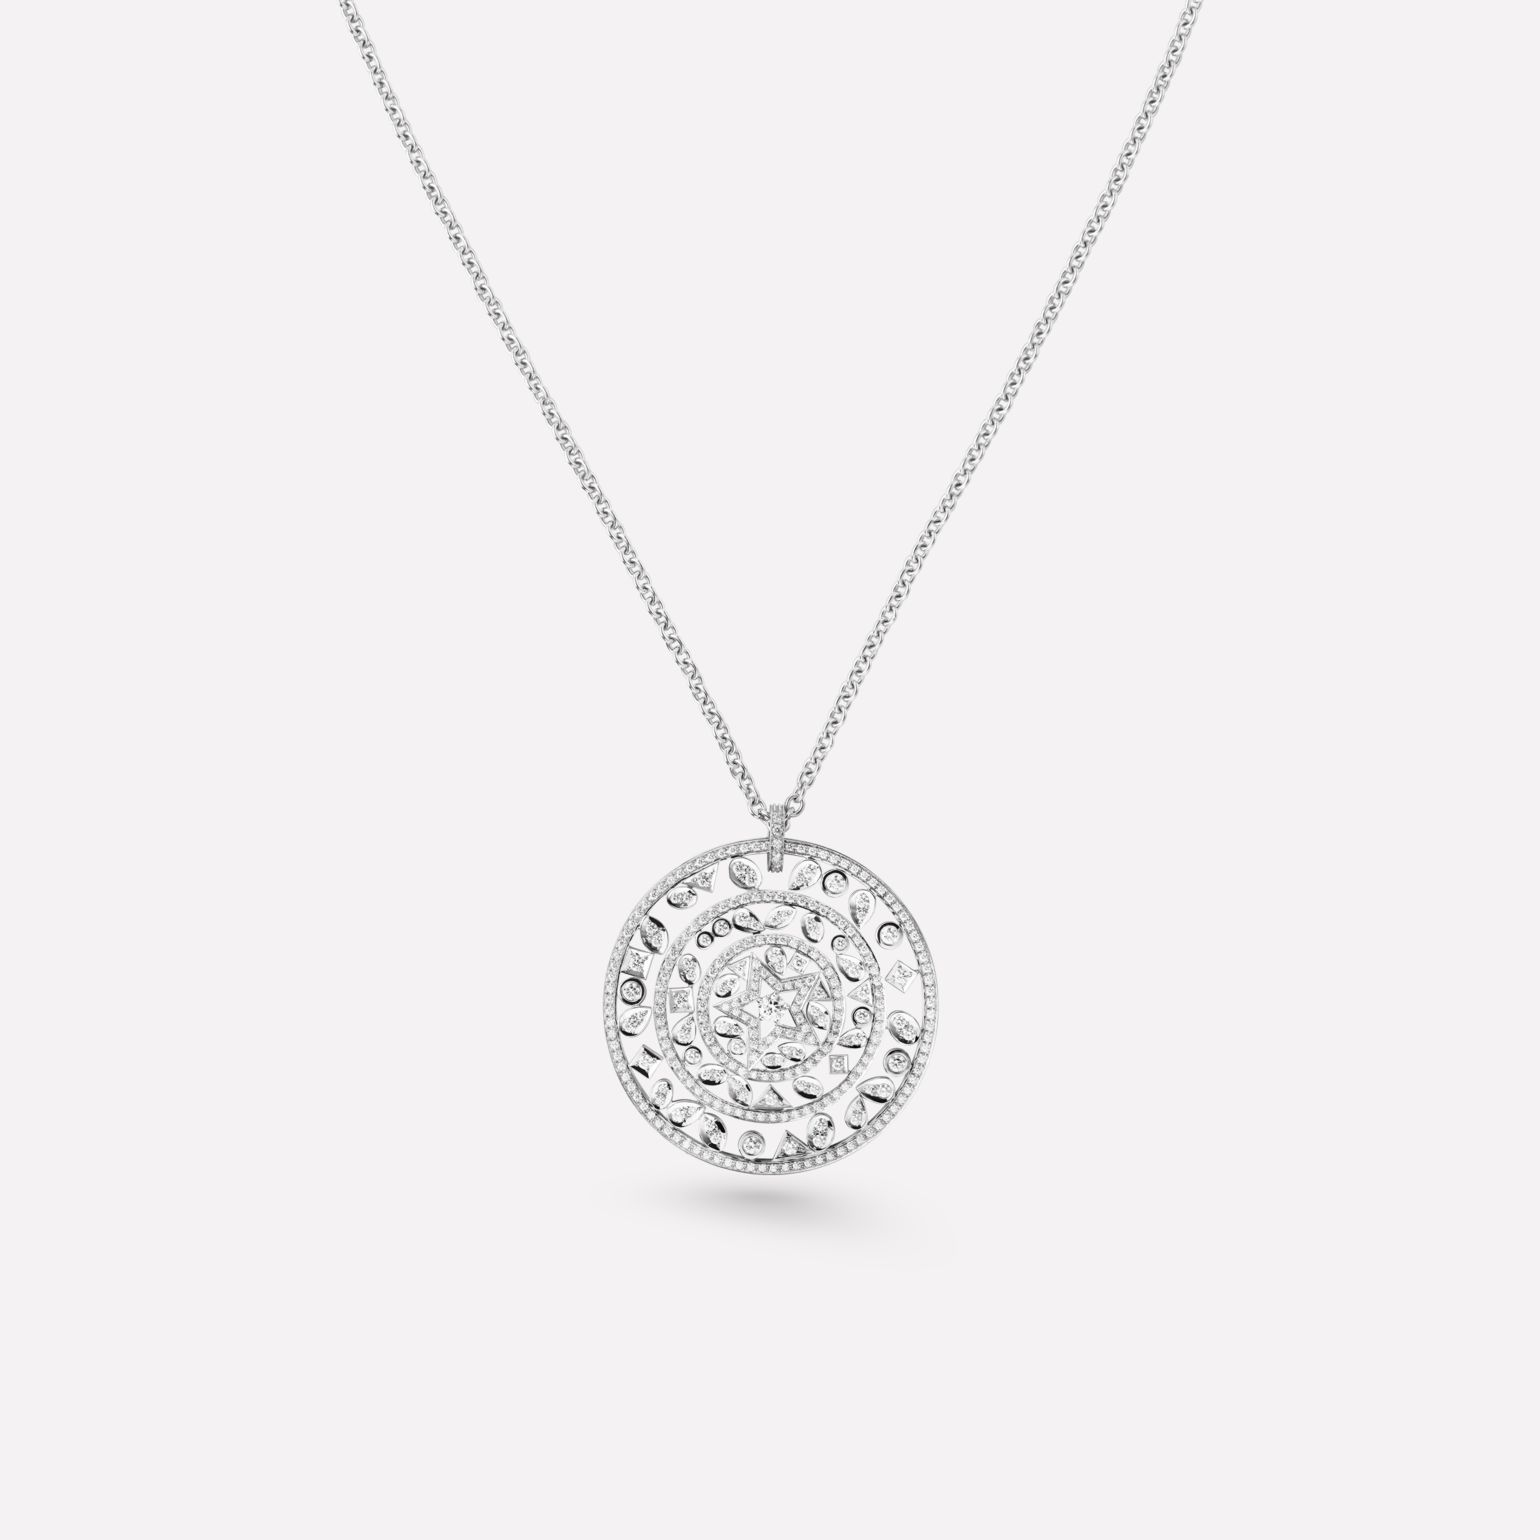 Comète necklace Star necklace, in 18K white gold and diamonds with one center diamond